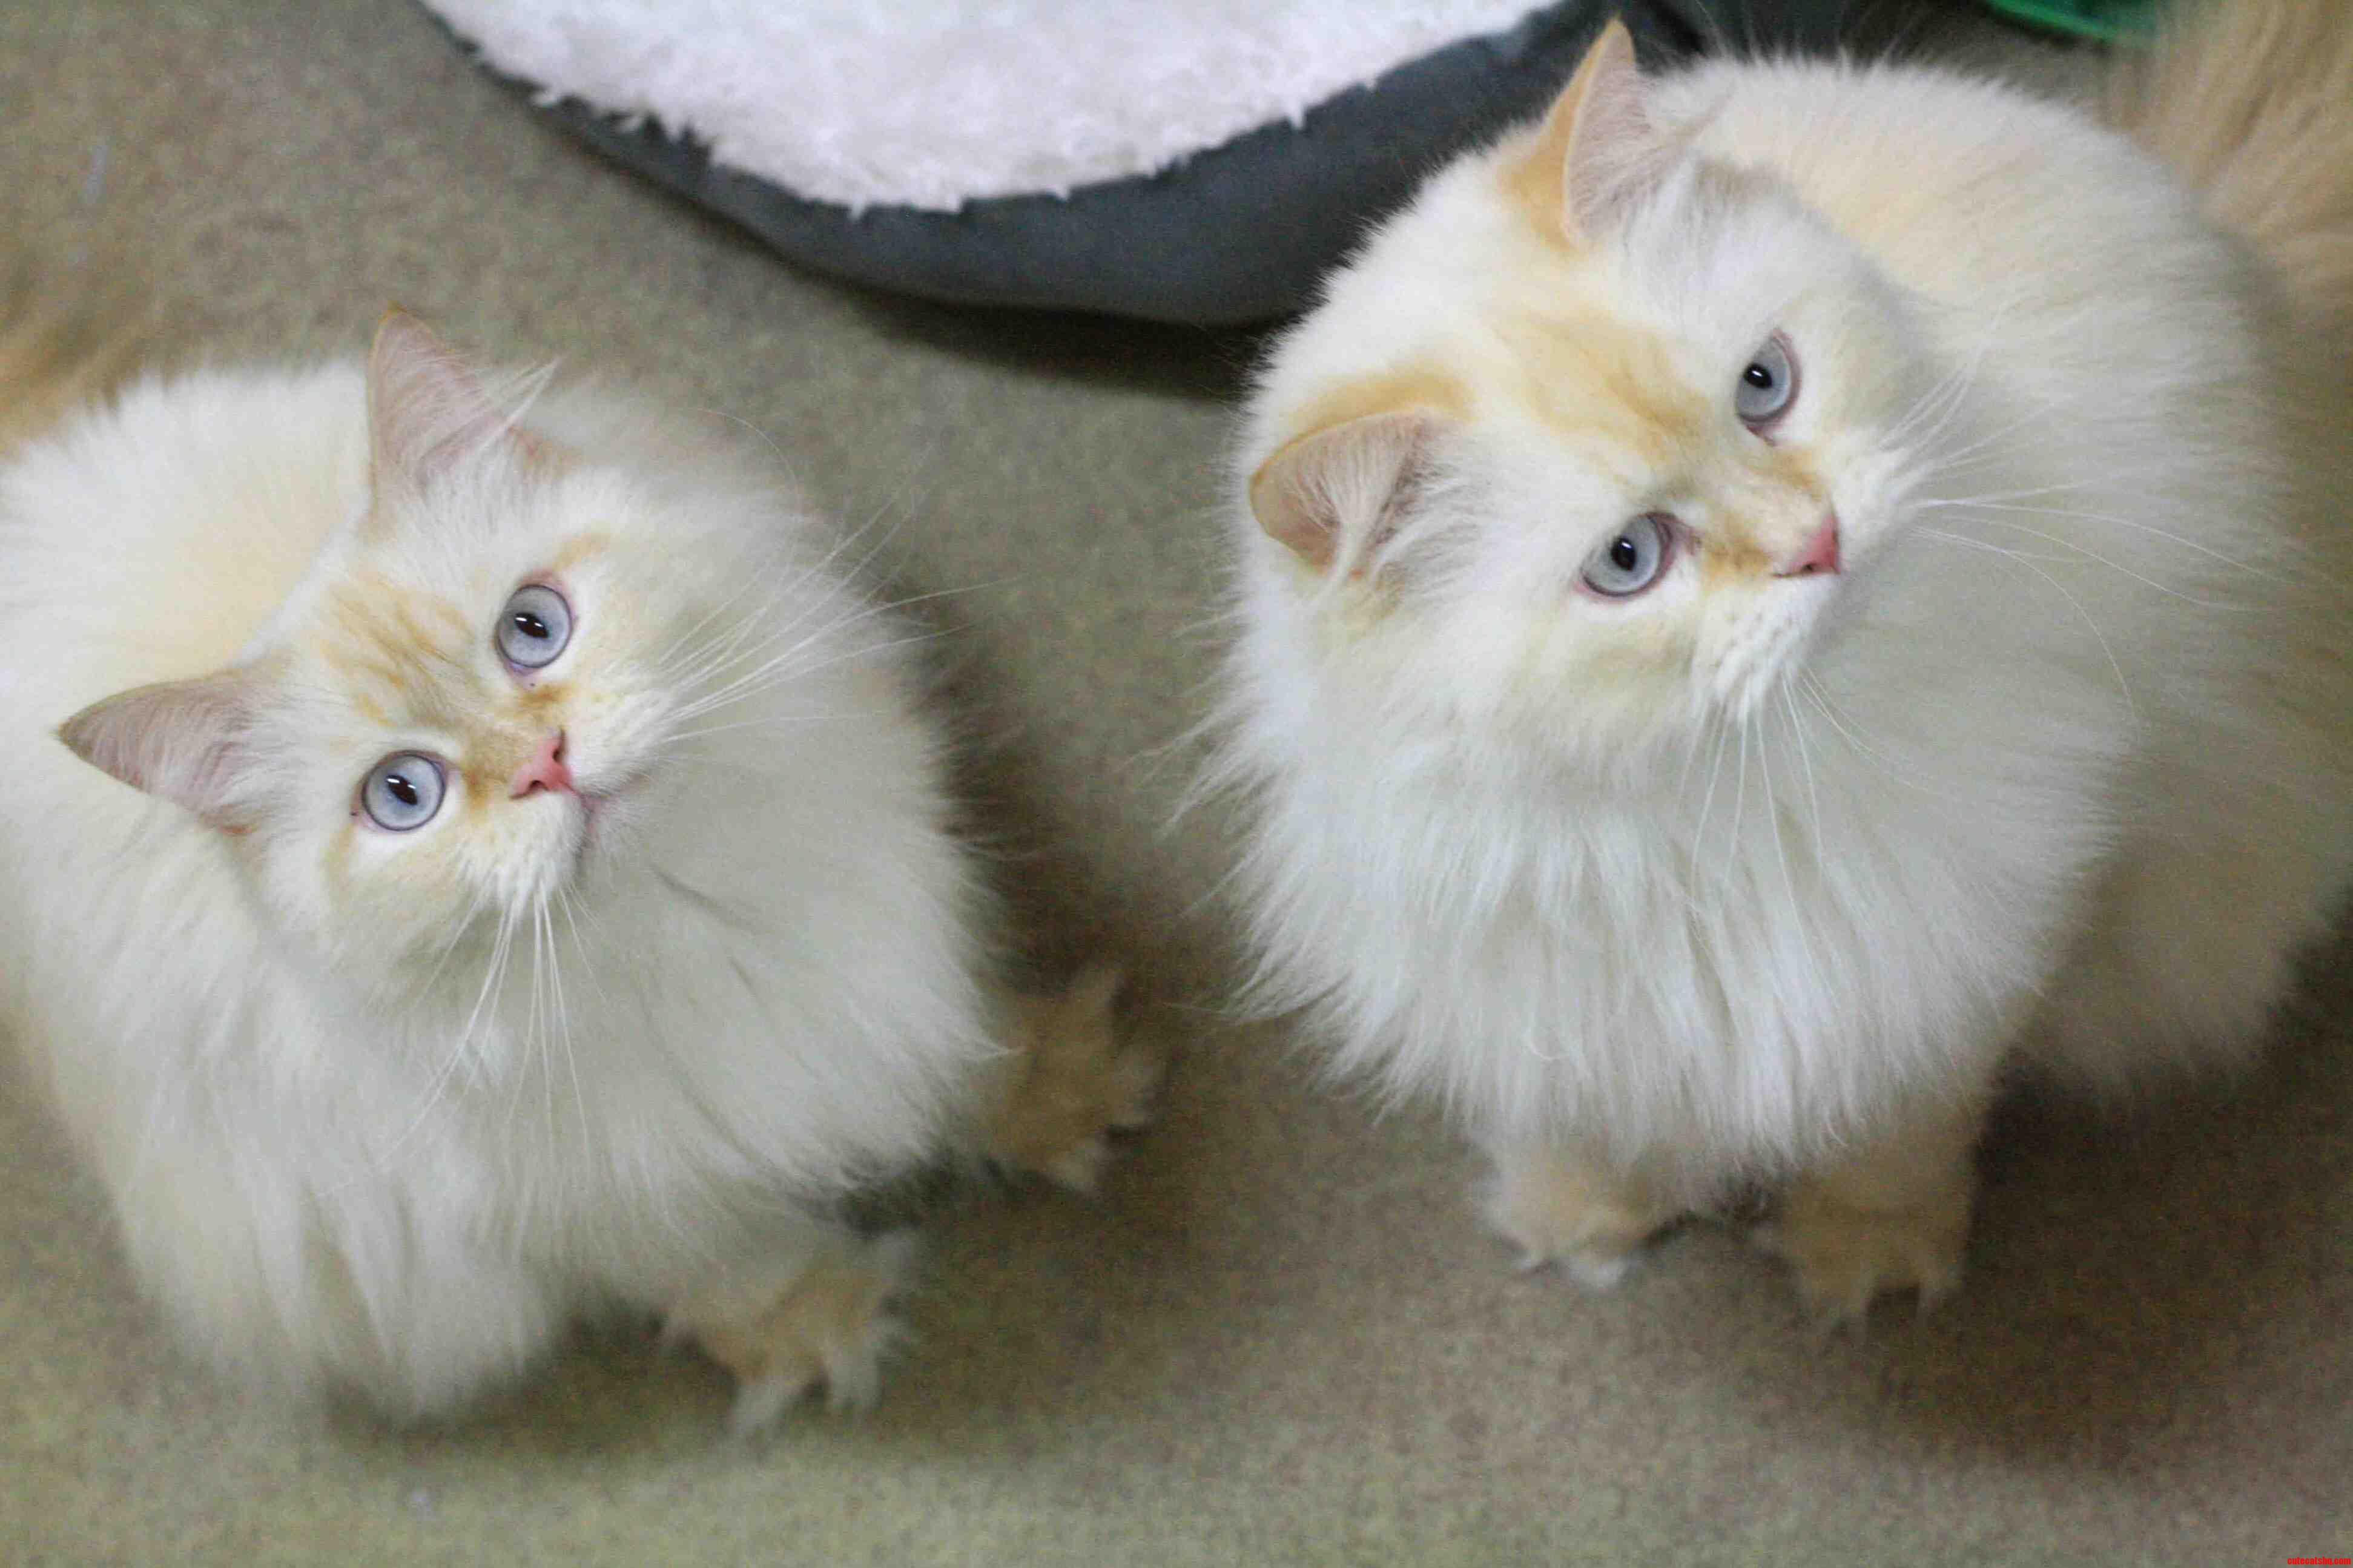 Purebred Himalayan Brothers That Were Abandoned And Later Wound Up At My Local Cat Rescue.